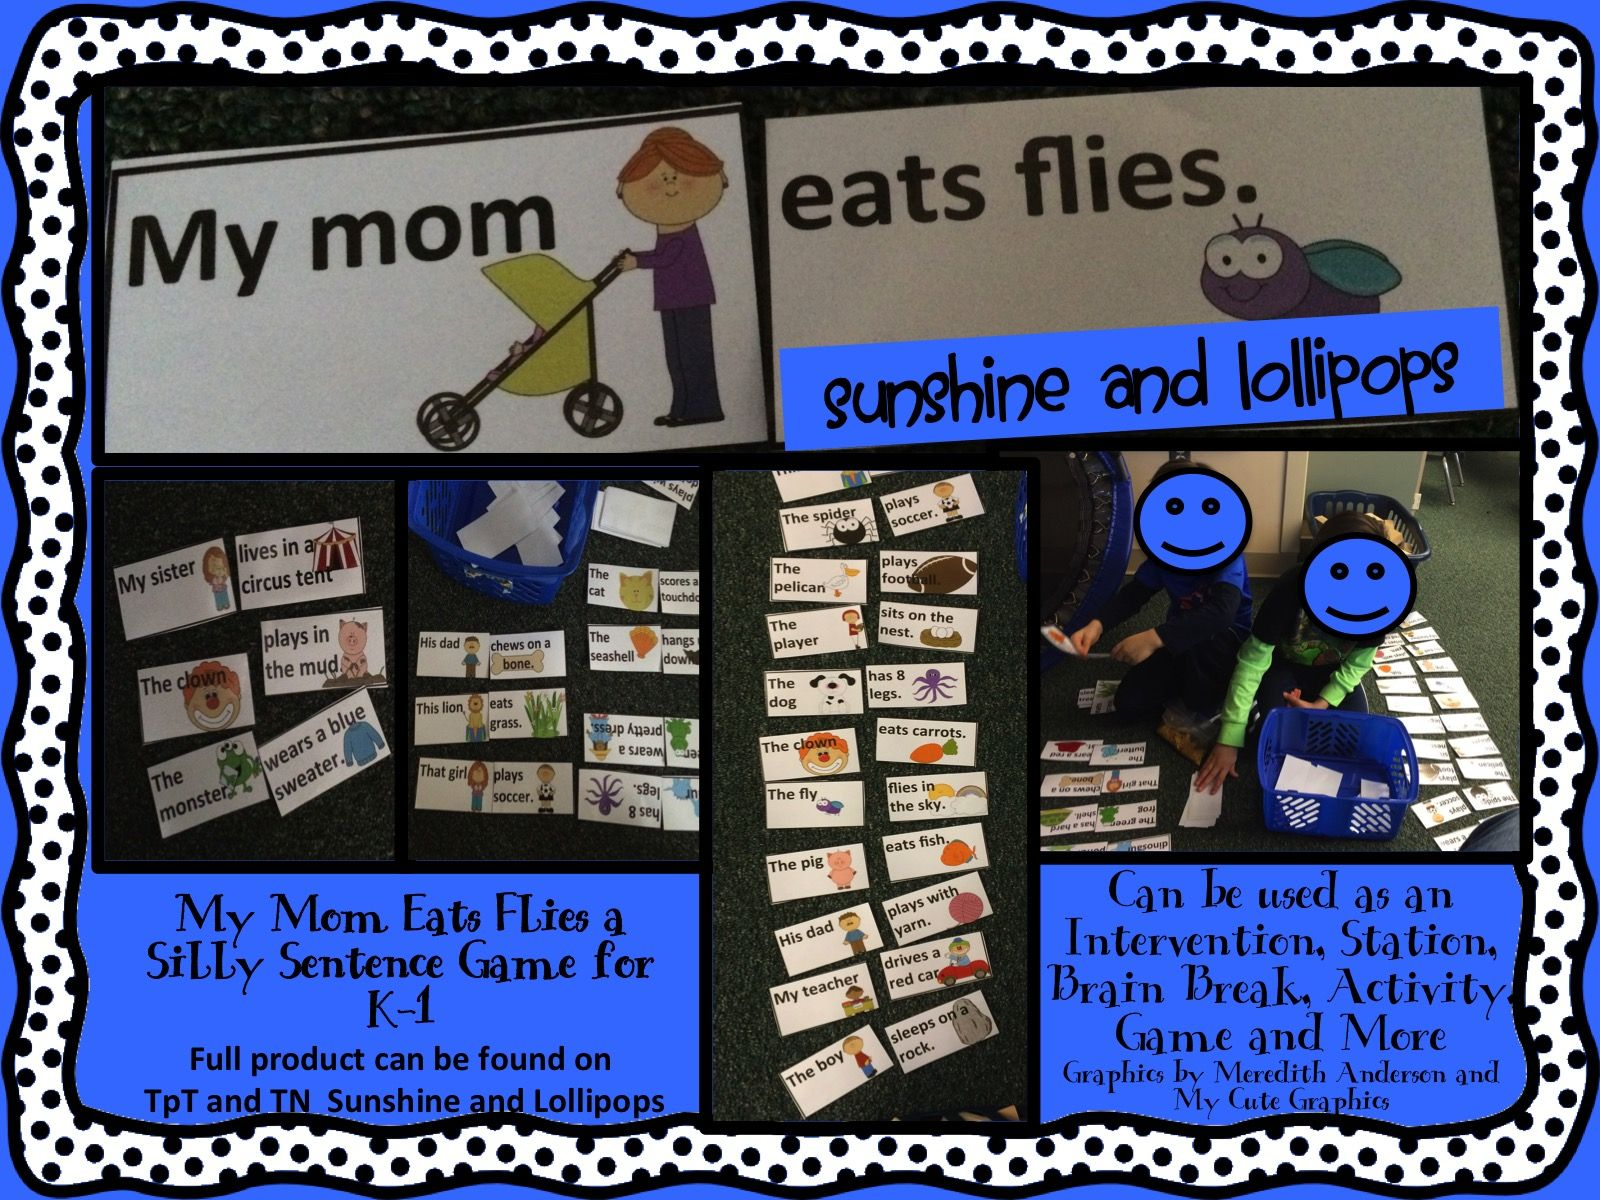 My Mom Eats Flies Fun Silly Sentence Game For K 1 Can Be